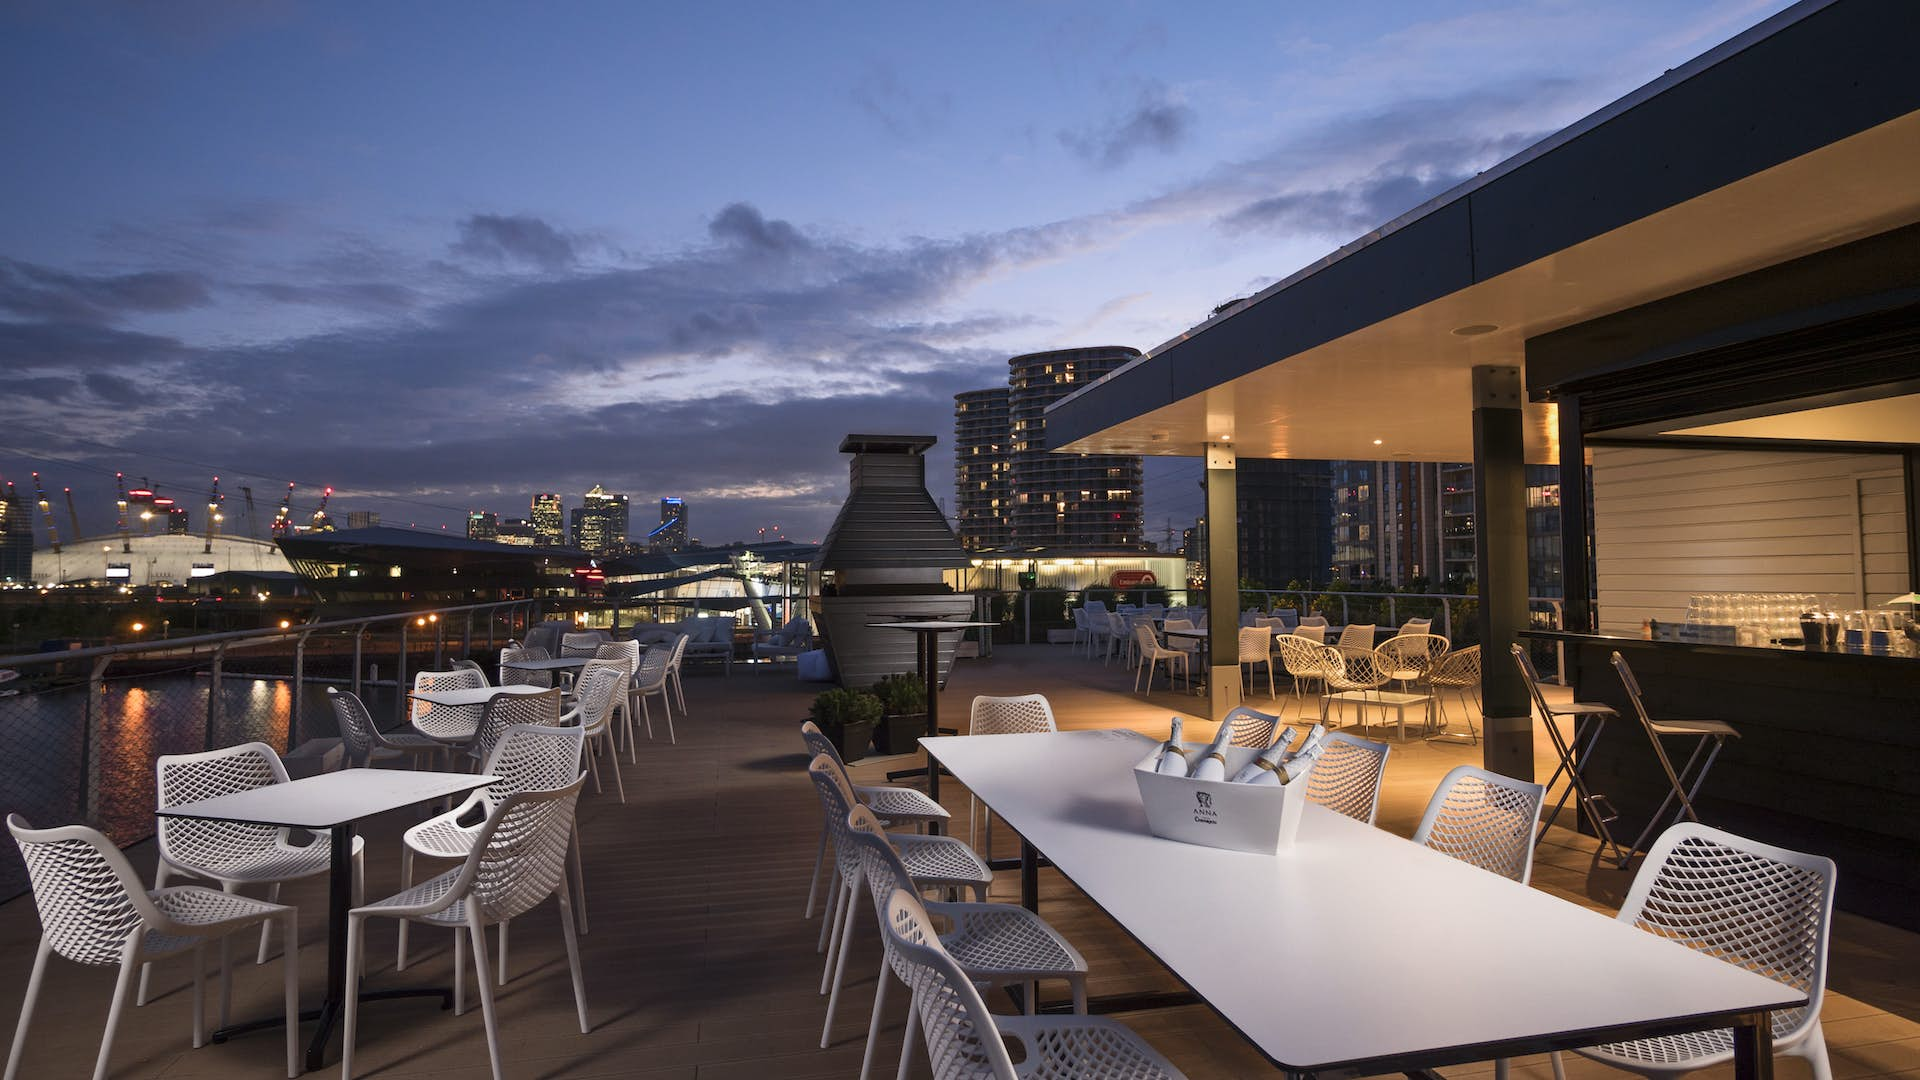 The Good Hotel Roof Terrace